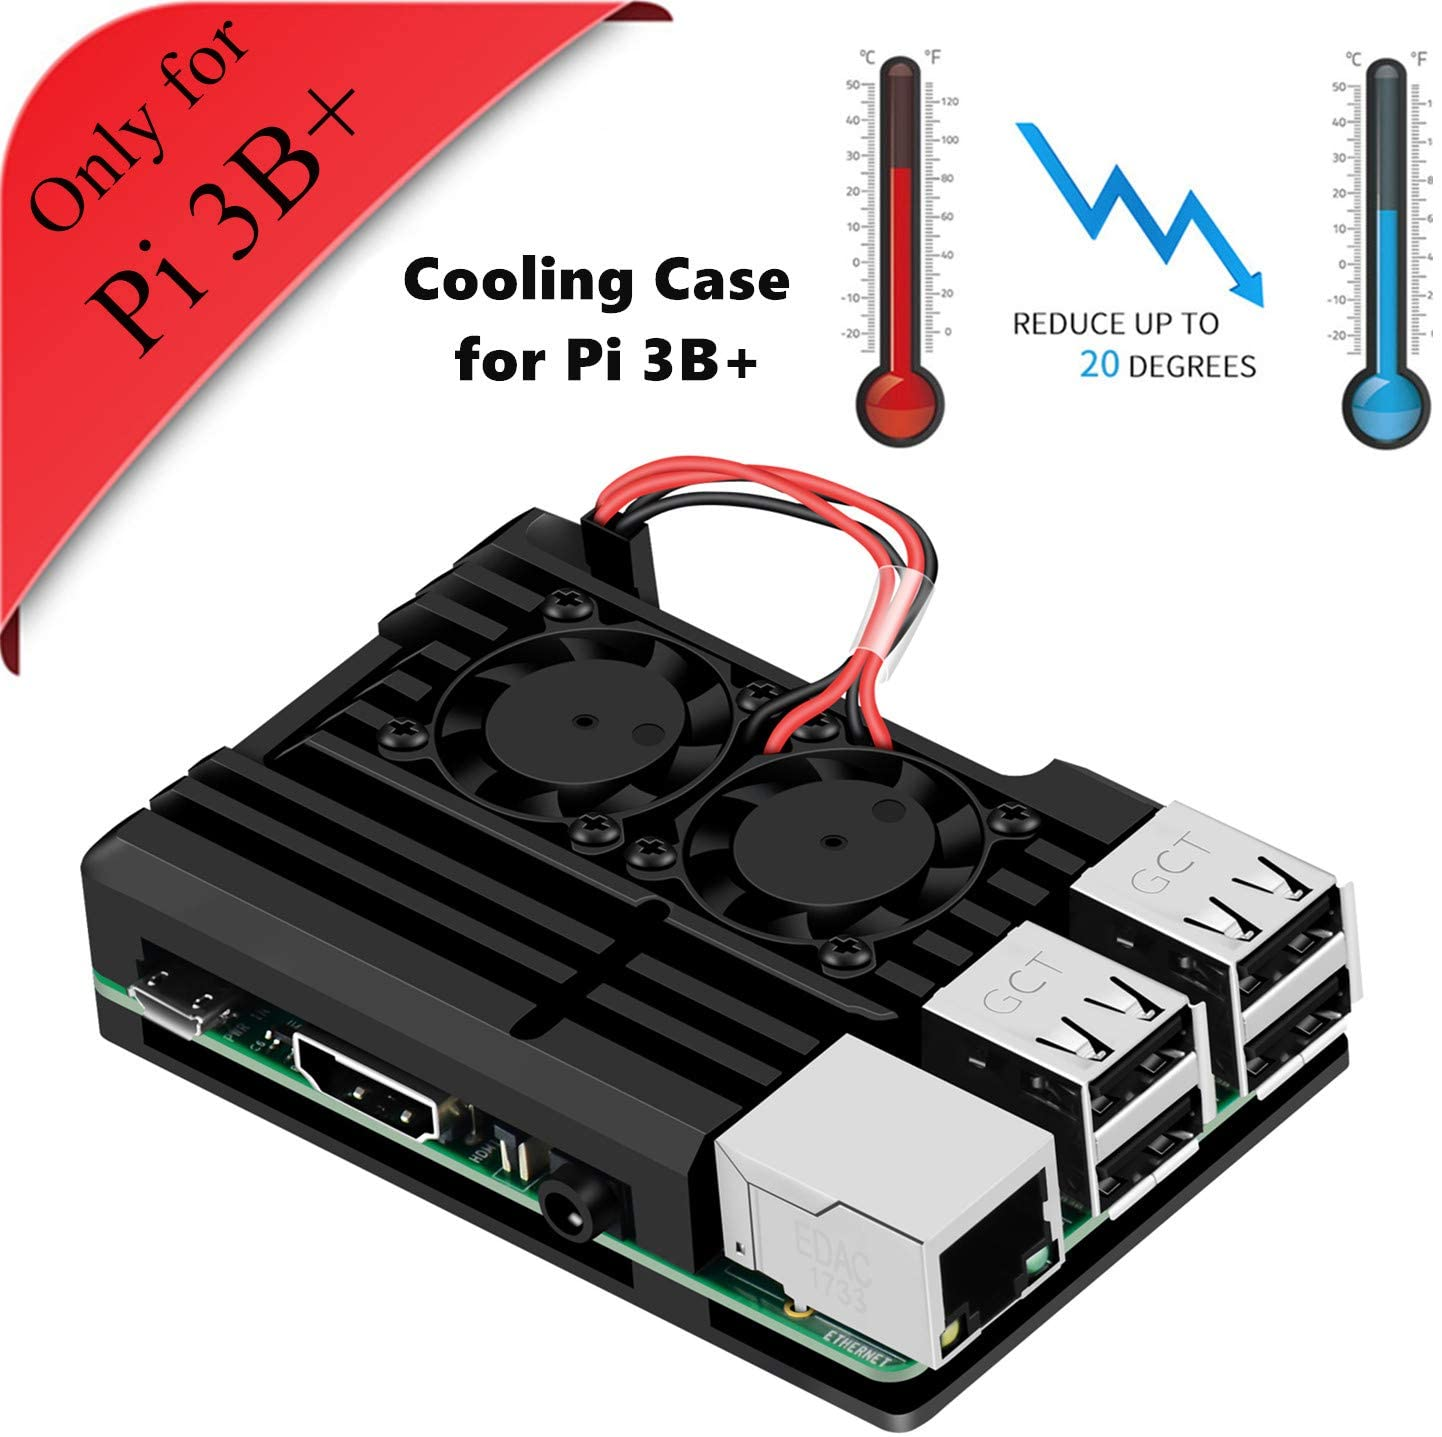 Raspberry Pi 3B+ Armor Case, Raspberry Pi Aluminum Alloy Case Cooling Fan Dual Fan, Raspberry Pi Fan Heatsink for Raspberry Pi 3 Model B+ (only Pi 3B+)